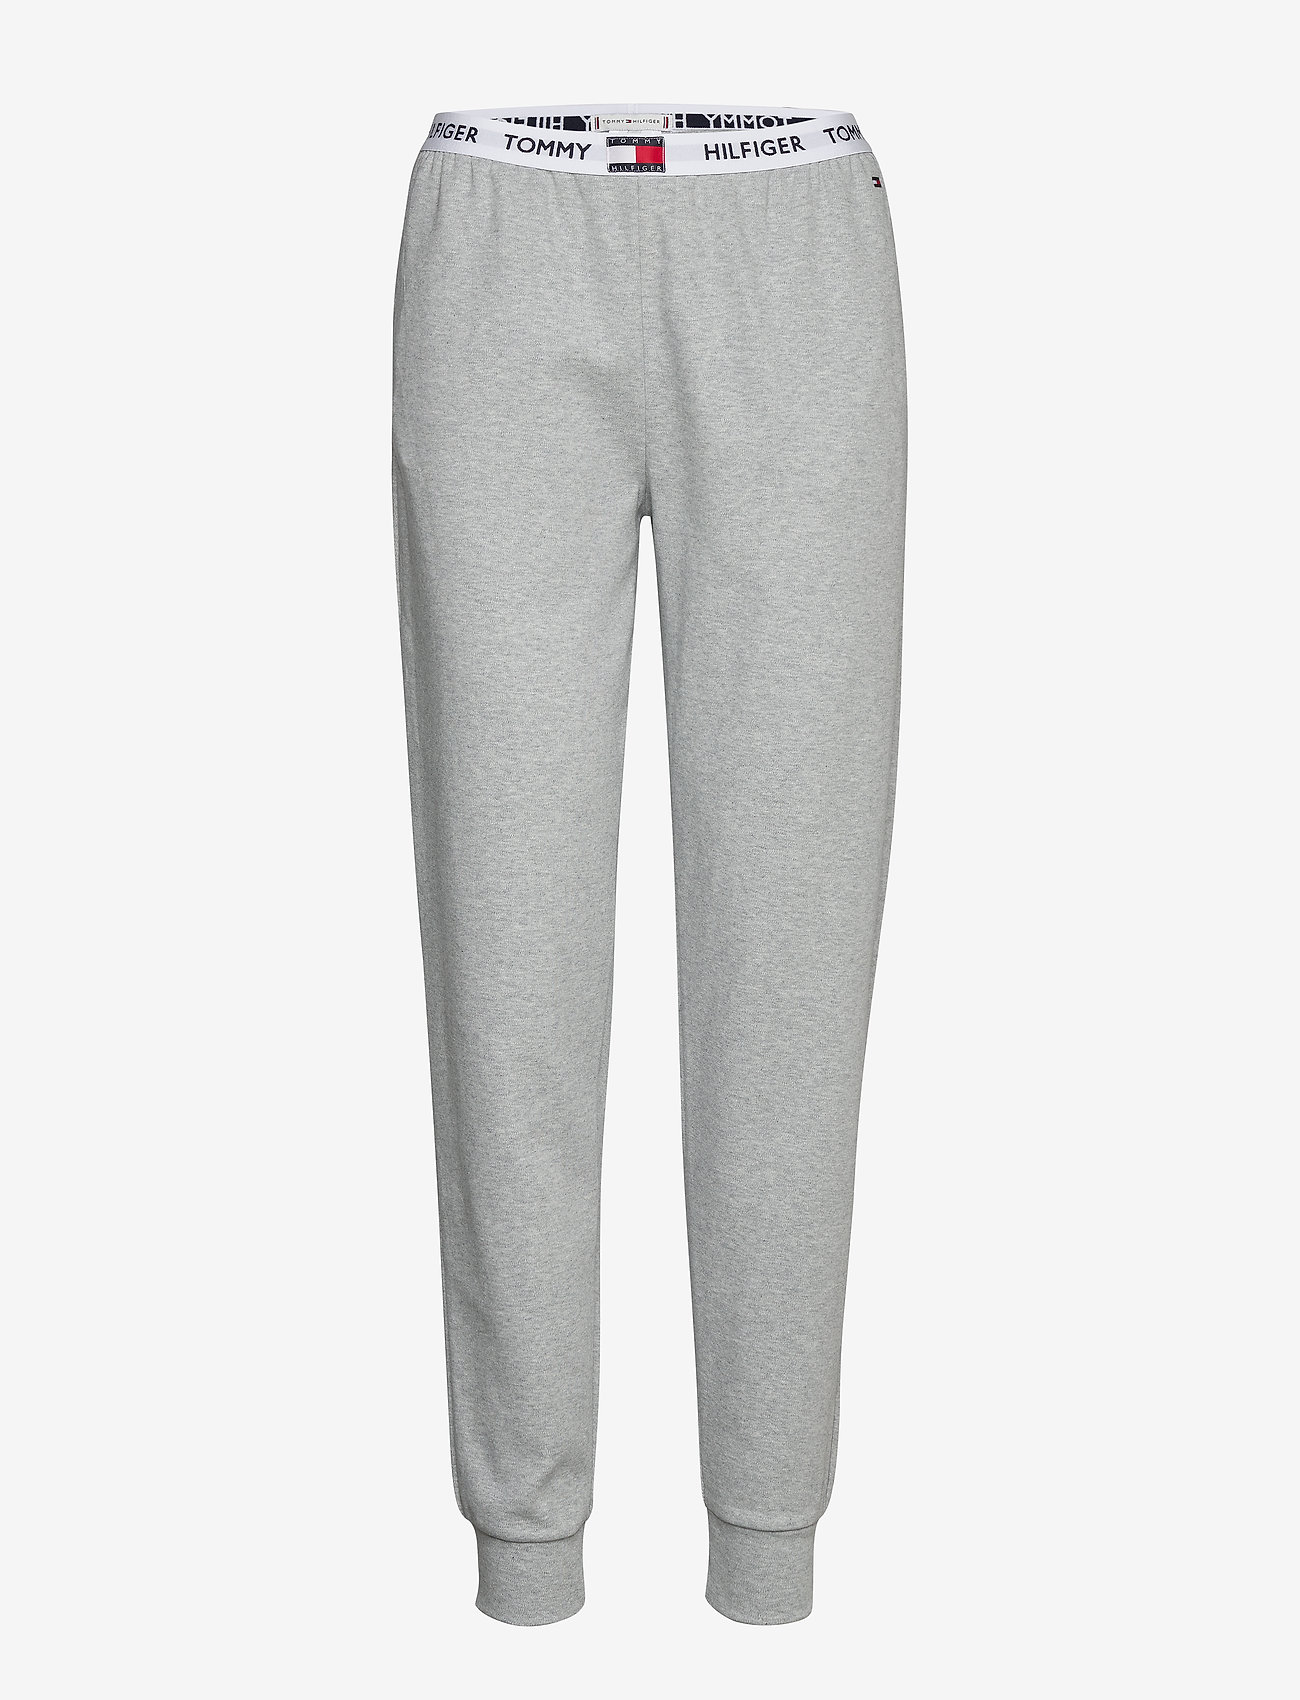 Tommy Hilfiger - PANT LWK - underdele - grey heather - 0